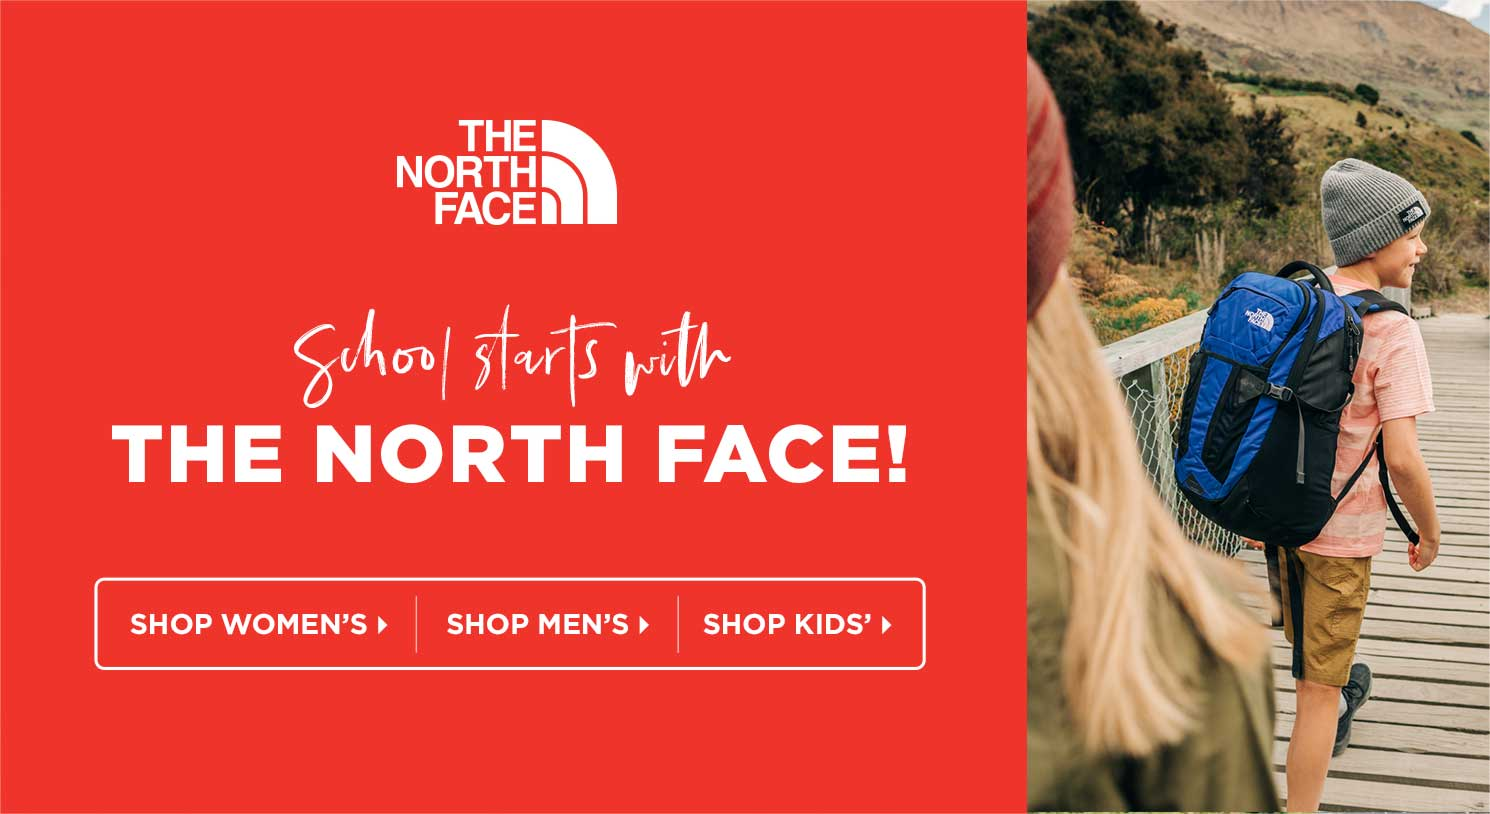 School Starts with The North Face!